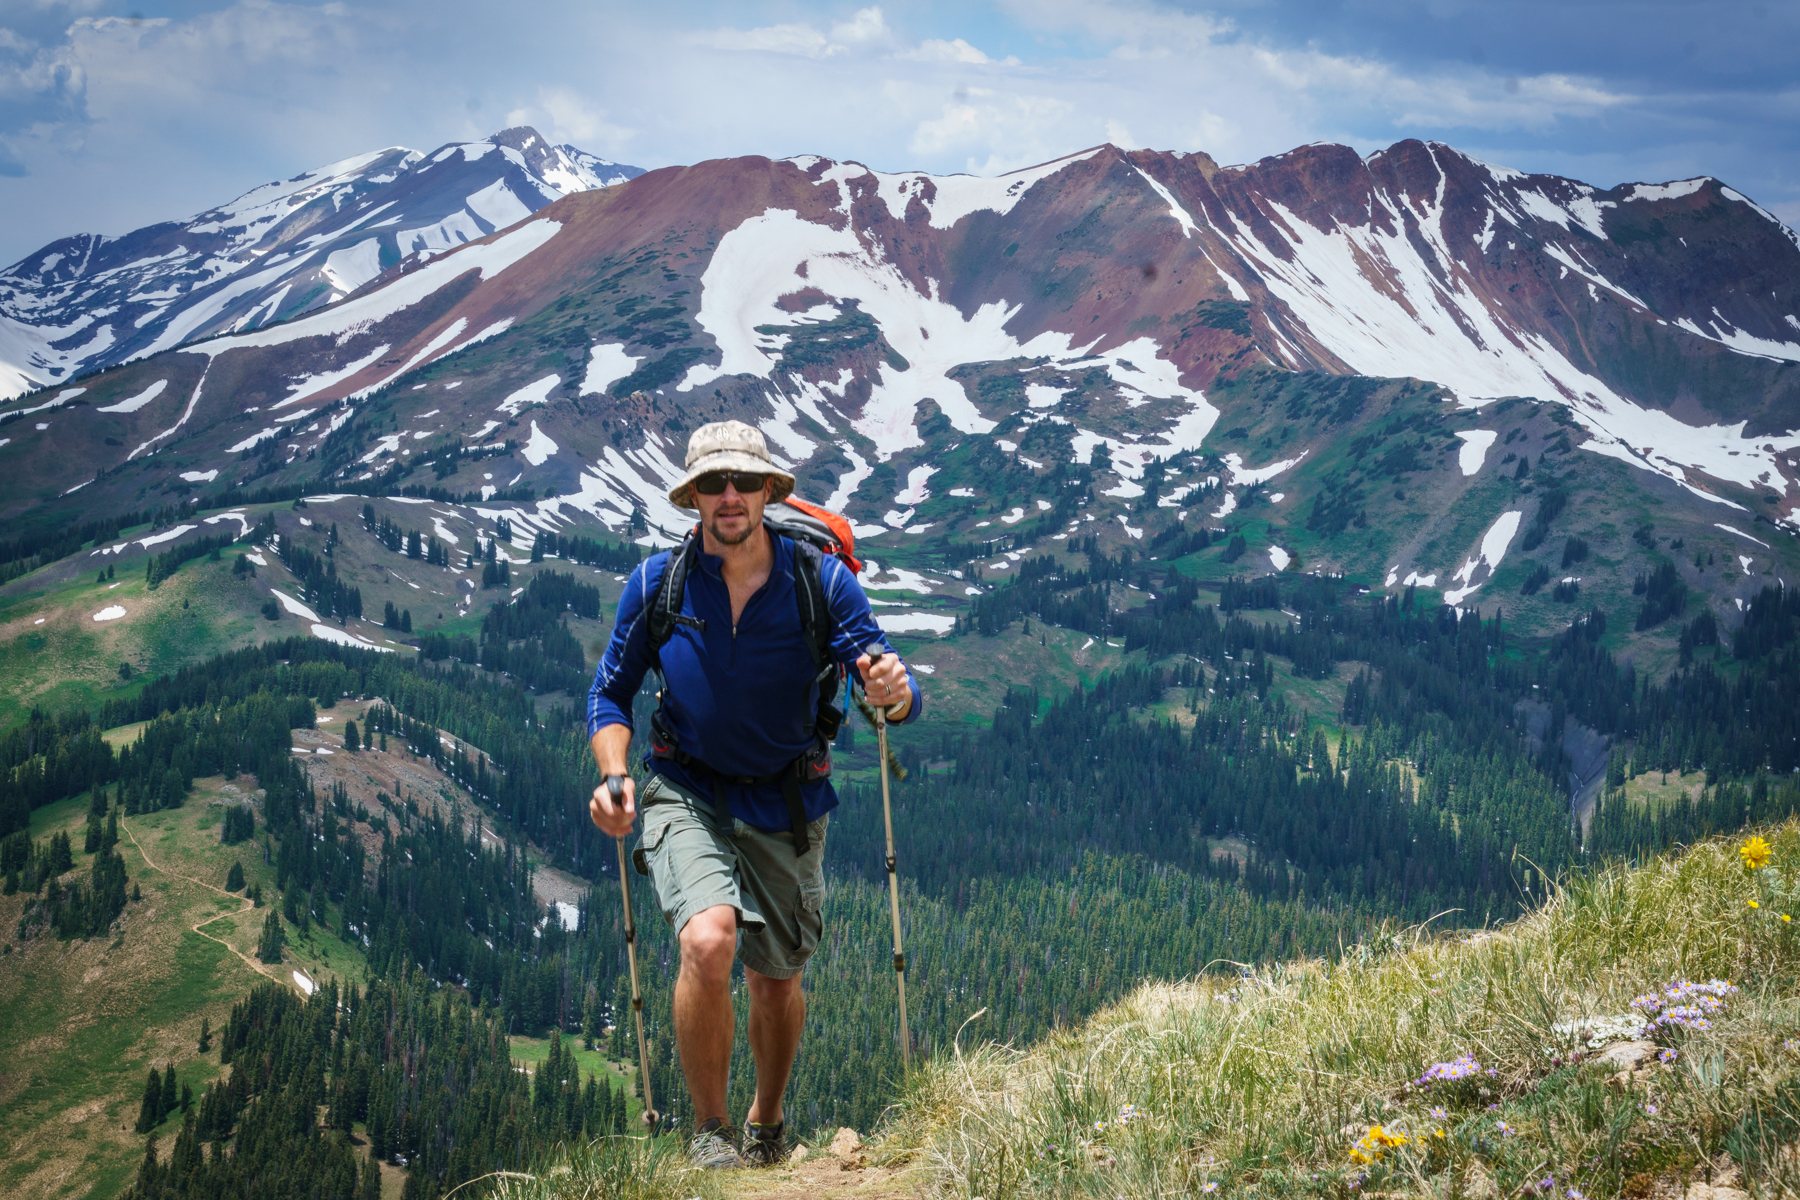 Andy hike fitness exercise workout everyday.  key card access. crested butte colorado